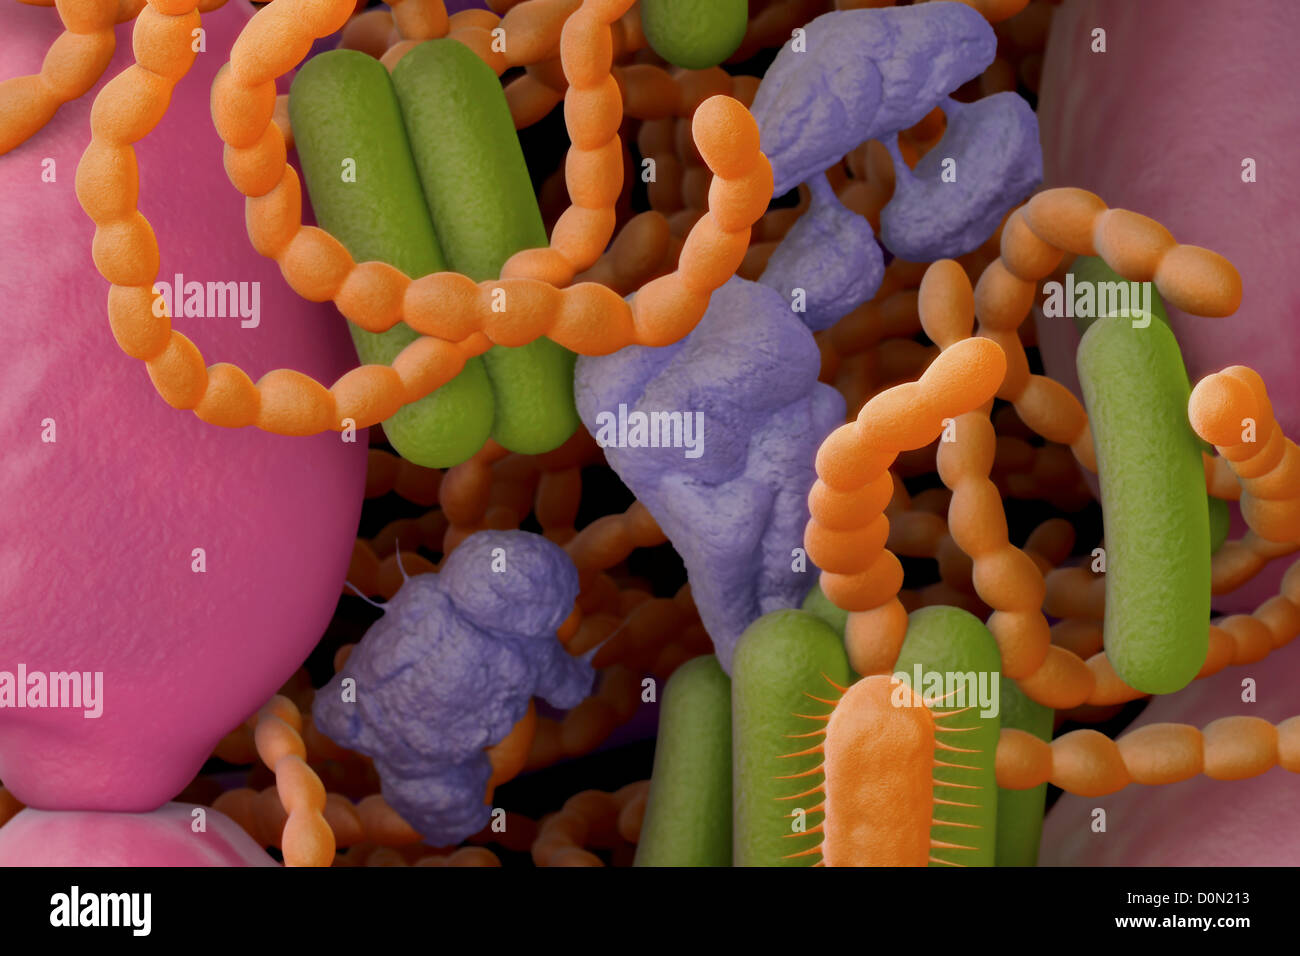 Close up of bacteria found in the mouth which can cause halitosis or bad breath. Stock Photo